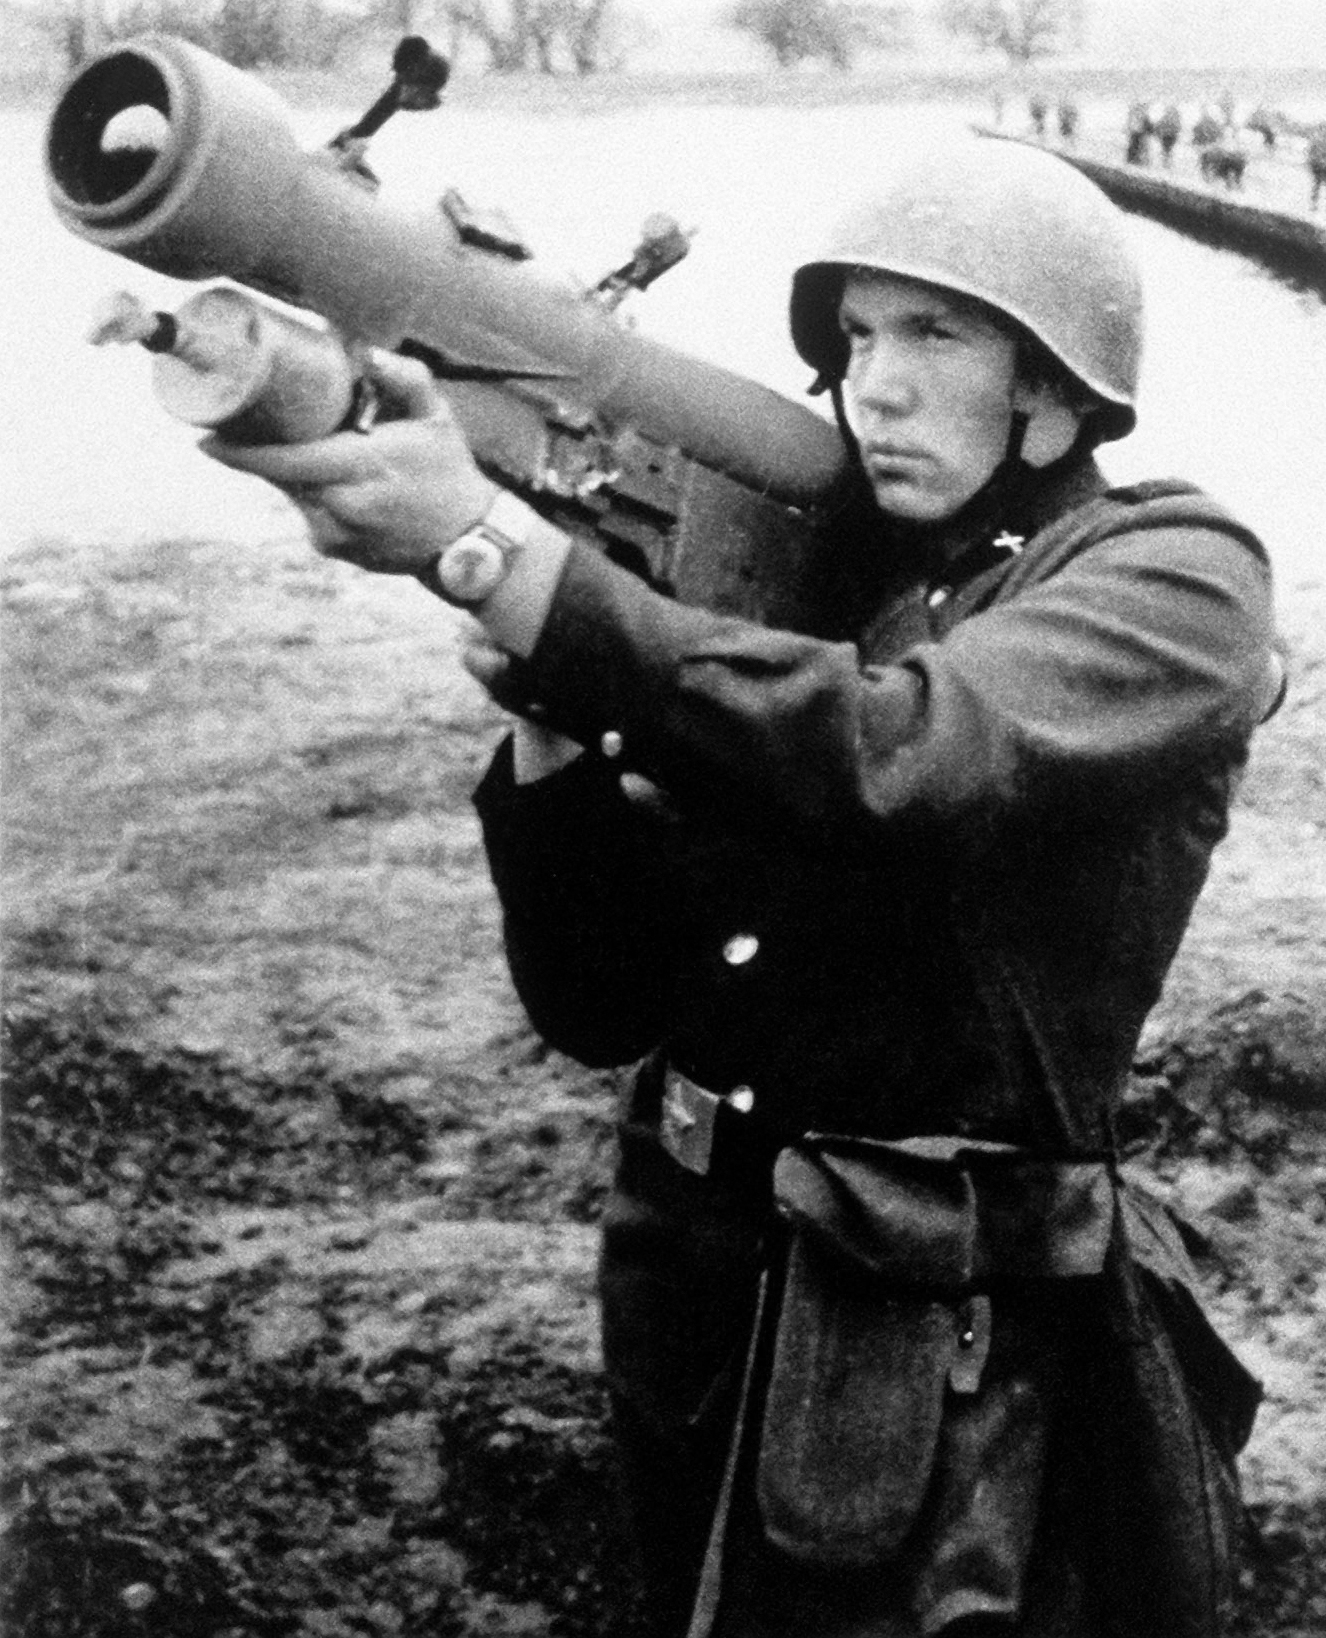 A soldier posing with a Strela launcher. Photo by GulfLINK.